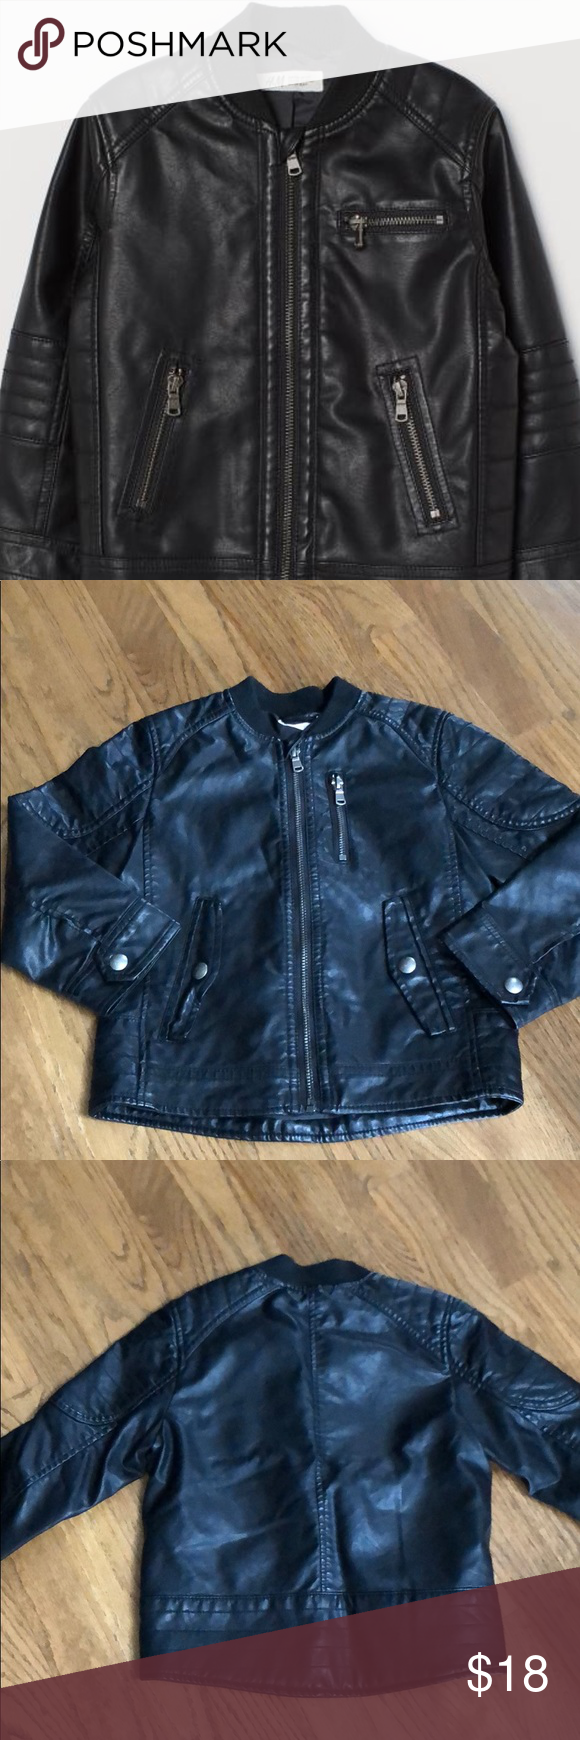 Boys size 45 faux leather jacket from H&M Leather